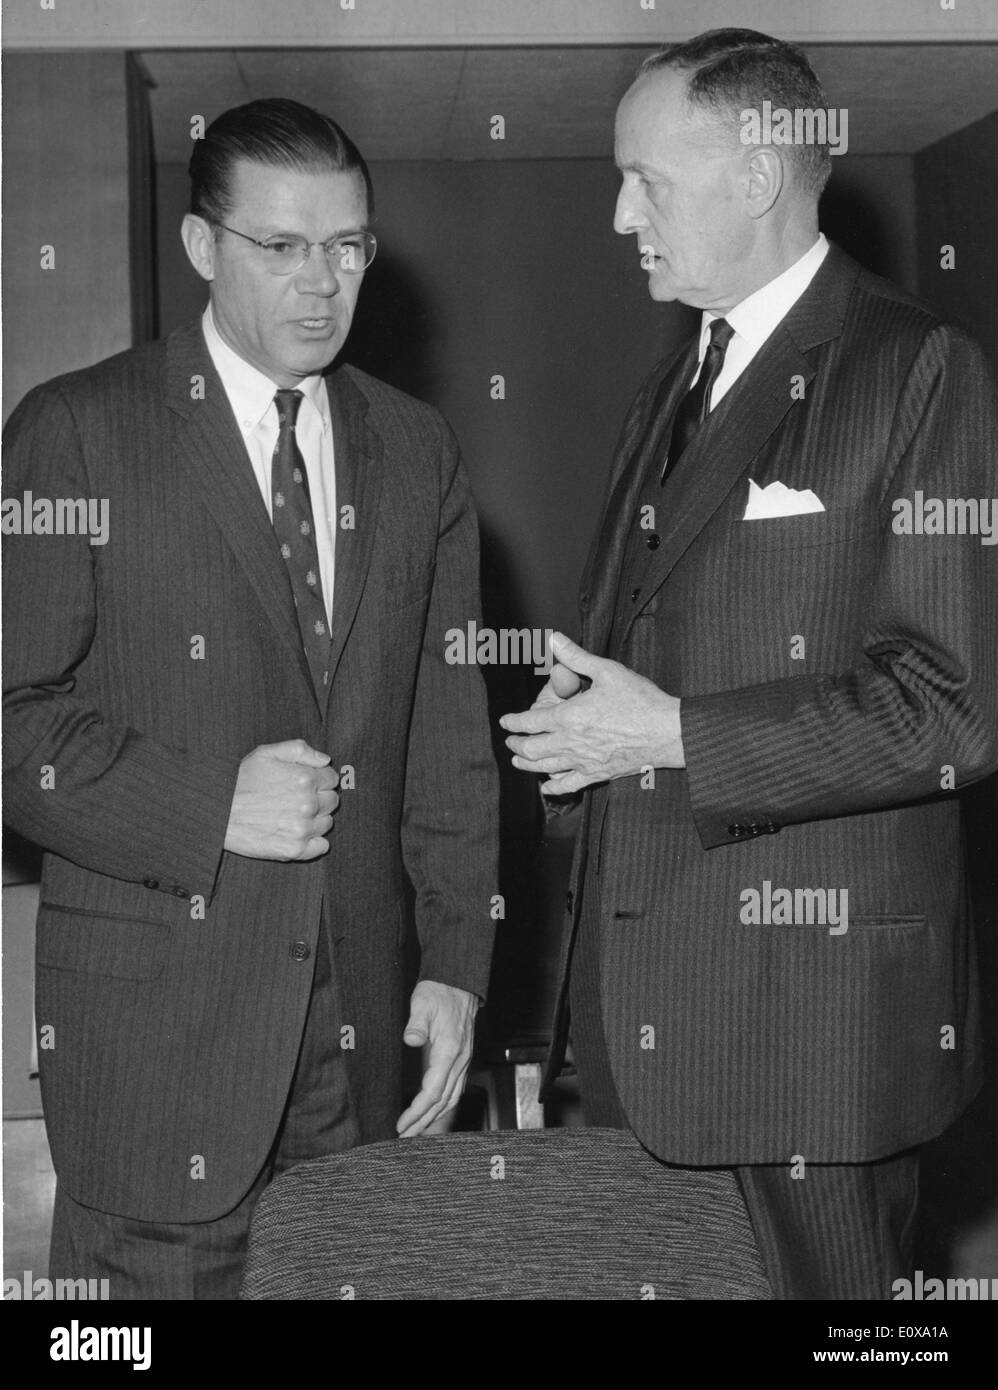 ROBERT MCNAMARA, (L) the United States Secretary of Defense, with MANLIO BROSIO at the Palace at the Parliament of Dauphin. - Stock Image